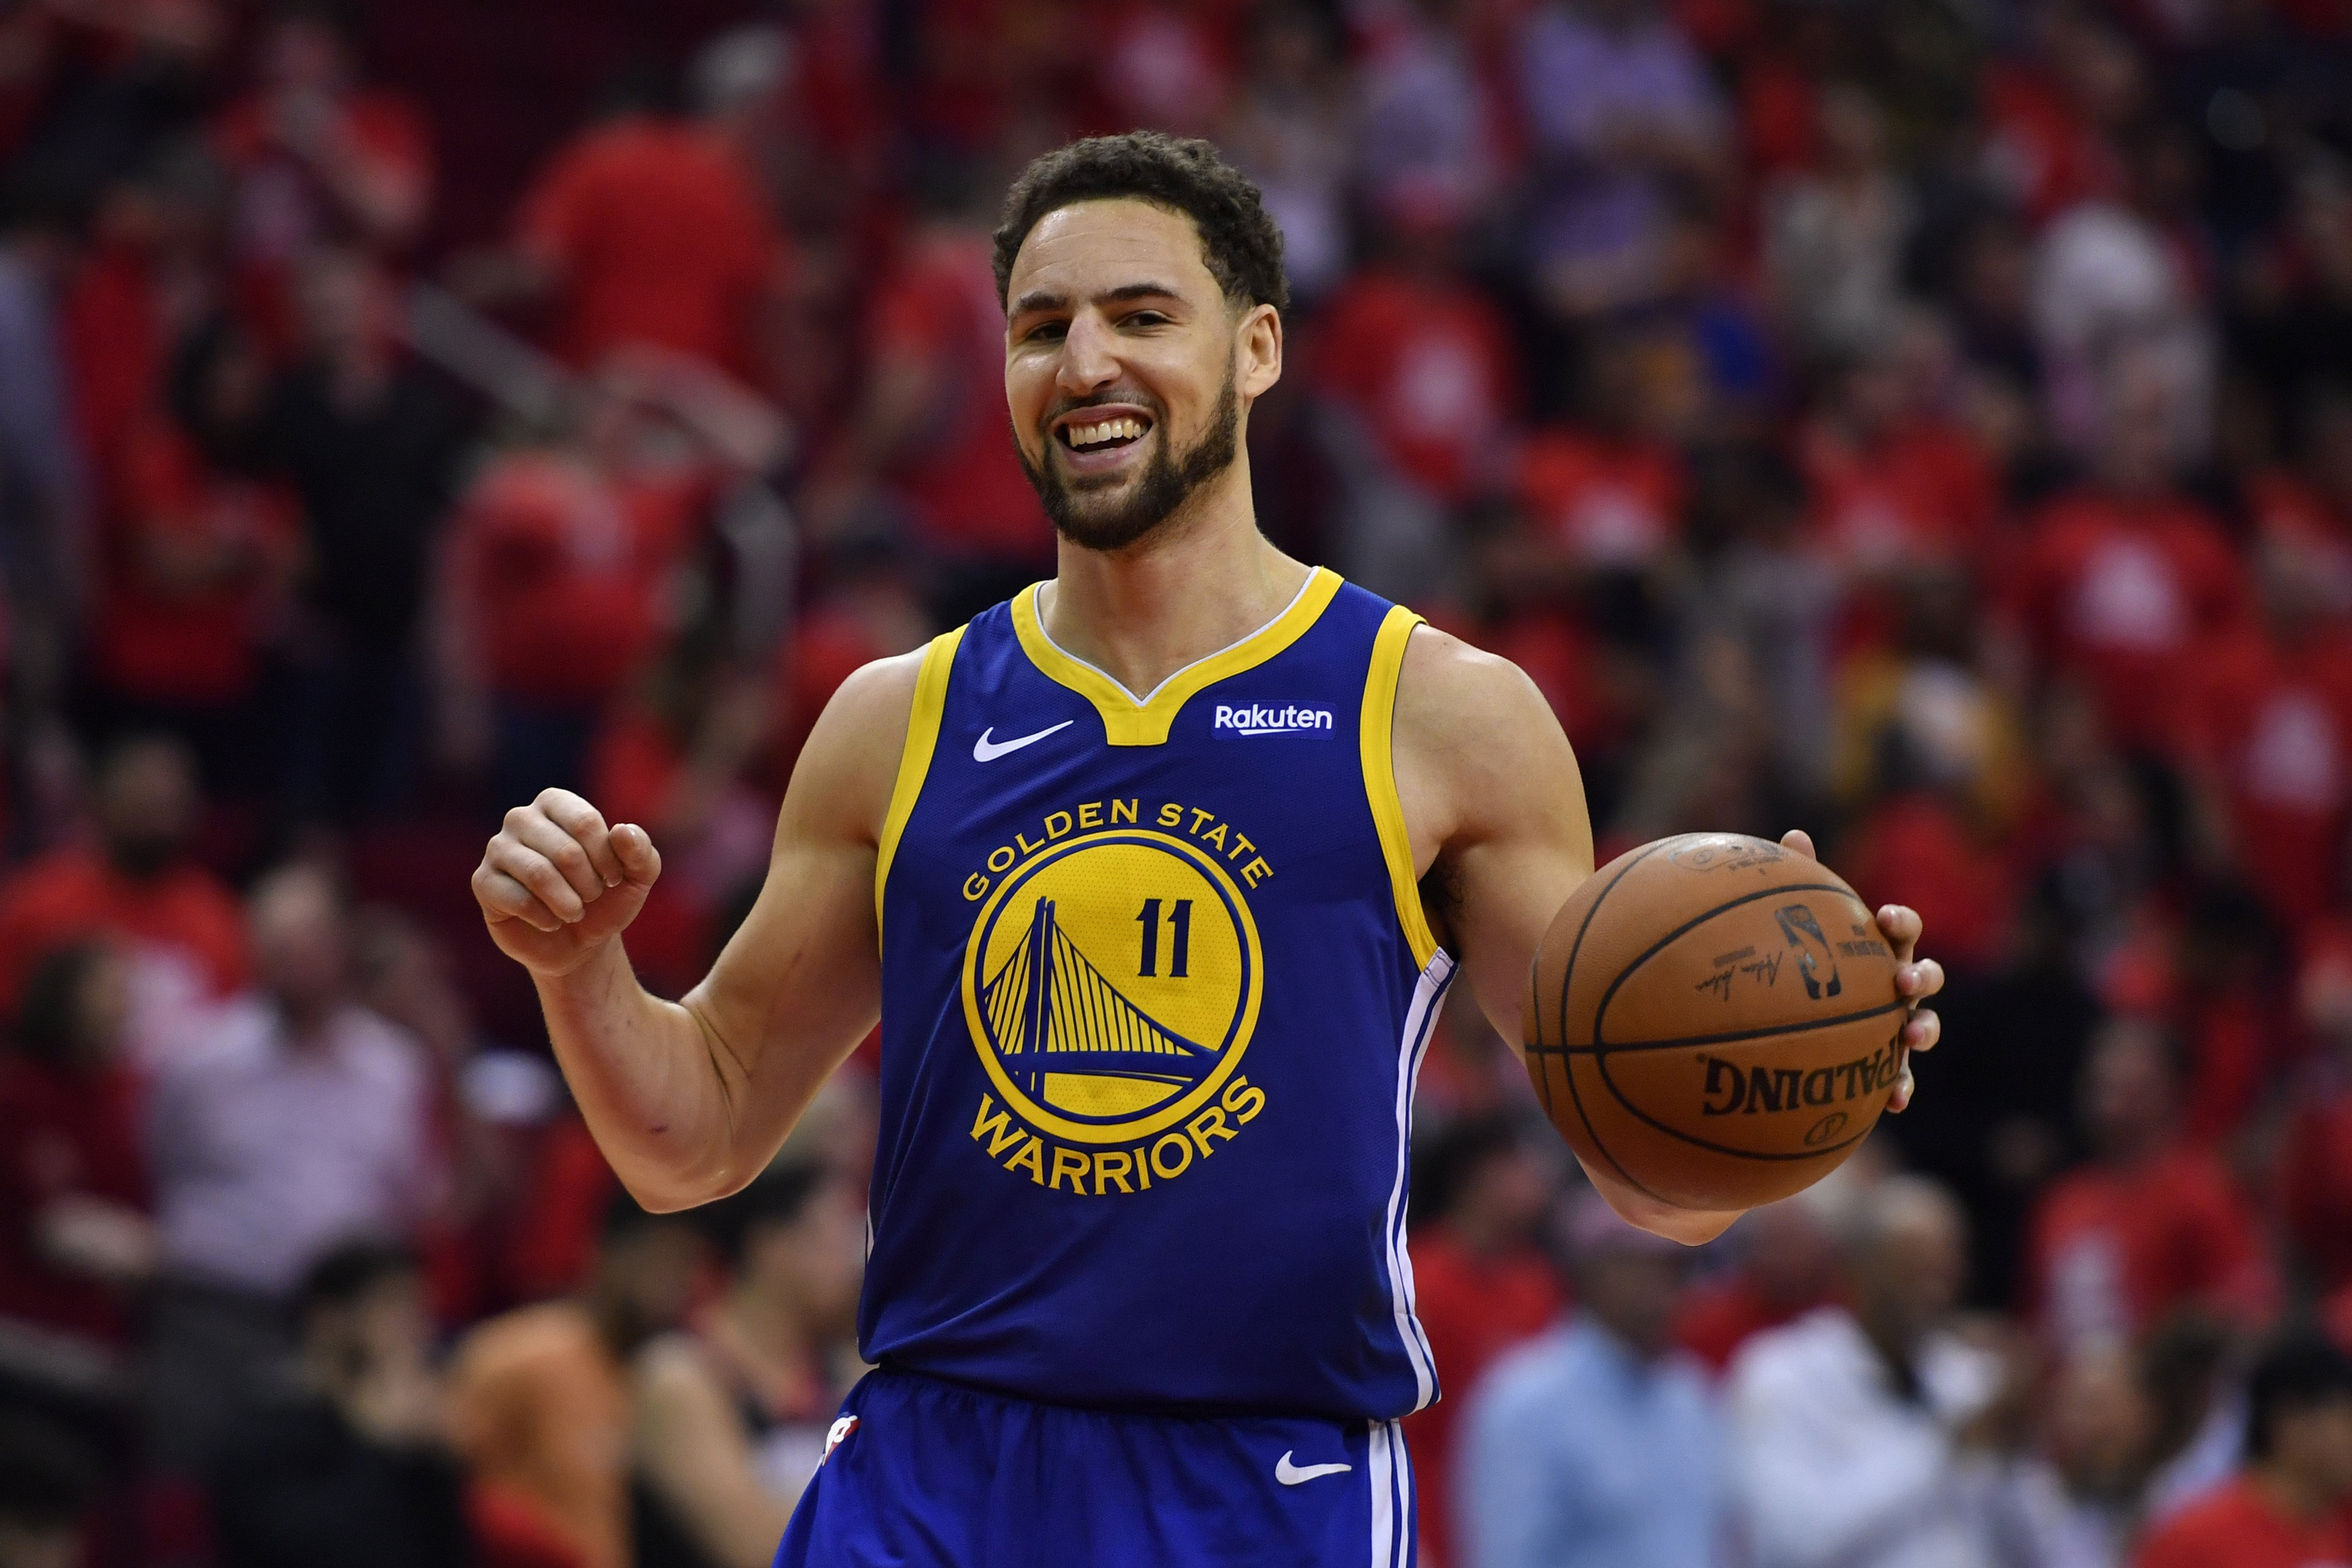 Golden State Warriors Klay Thompson 11 Smiles As He Celebrates During The Final Minute Of The Fourth Quarter Of Game 6 Of Their Nba Second Round Playoff